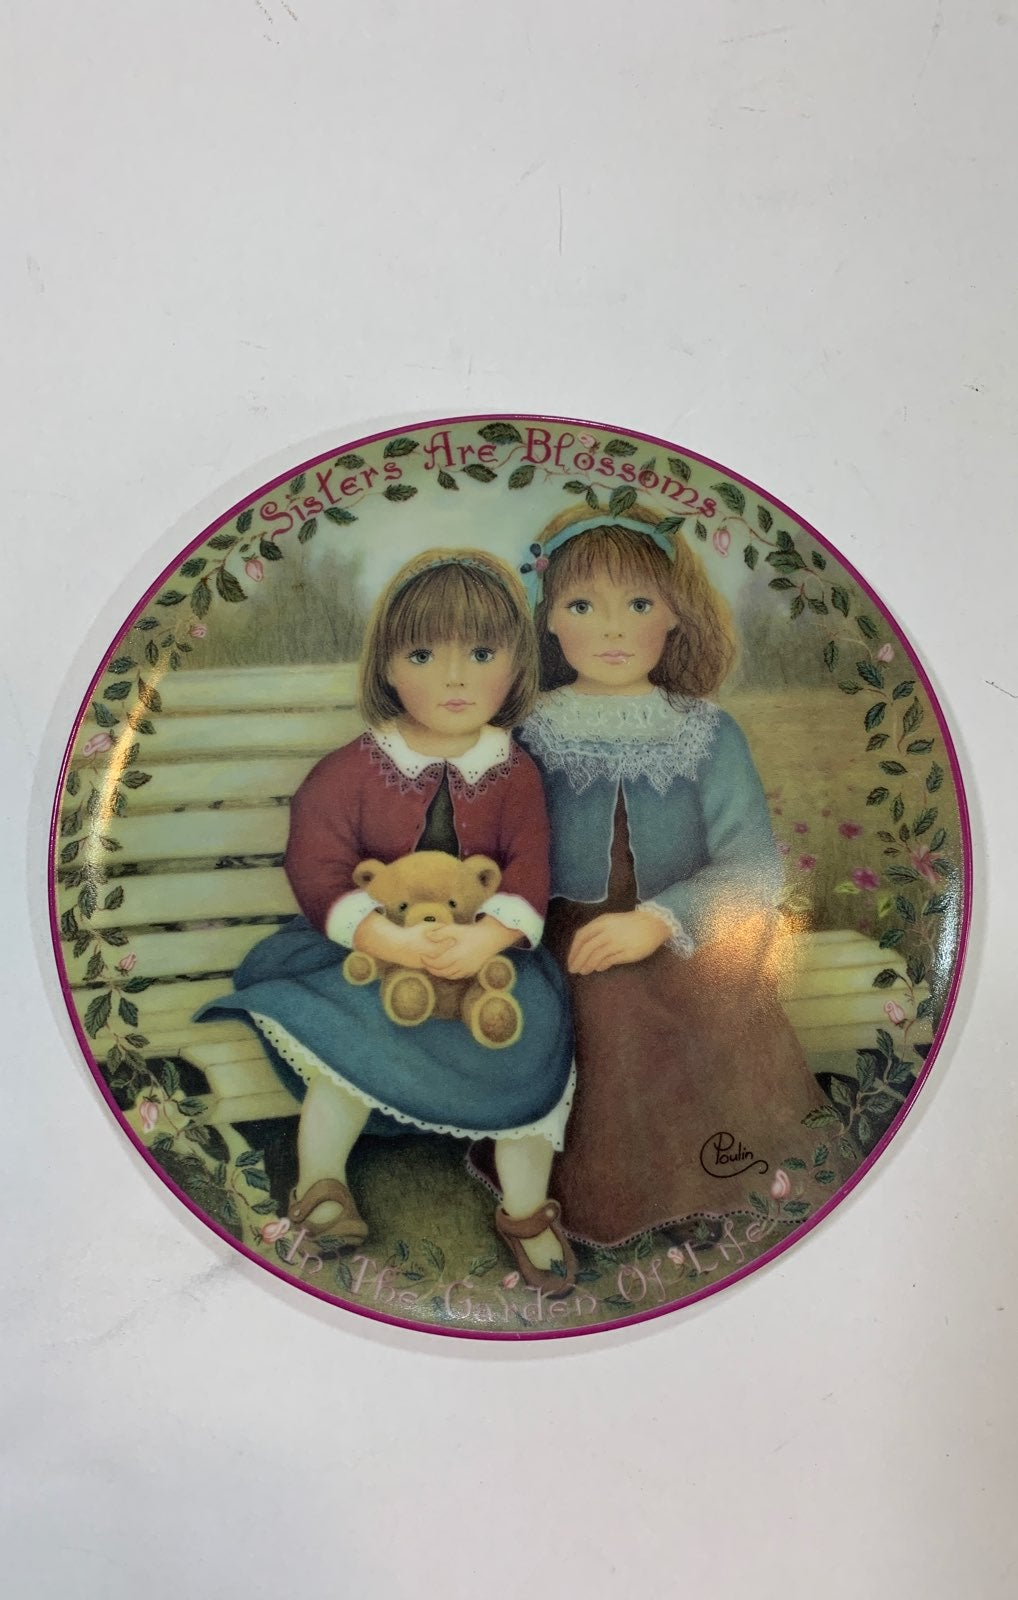 """Sisters Are Blossoms"" Plate 1995"